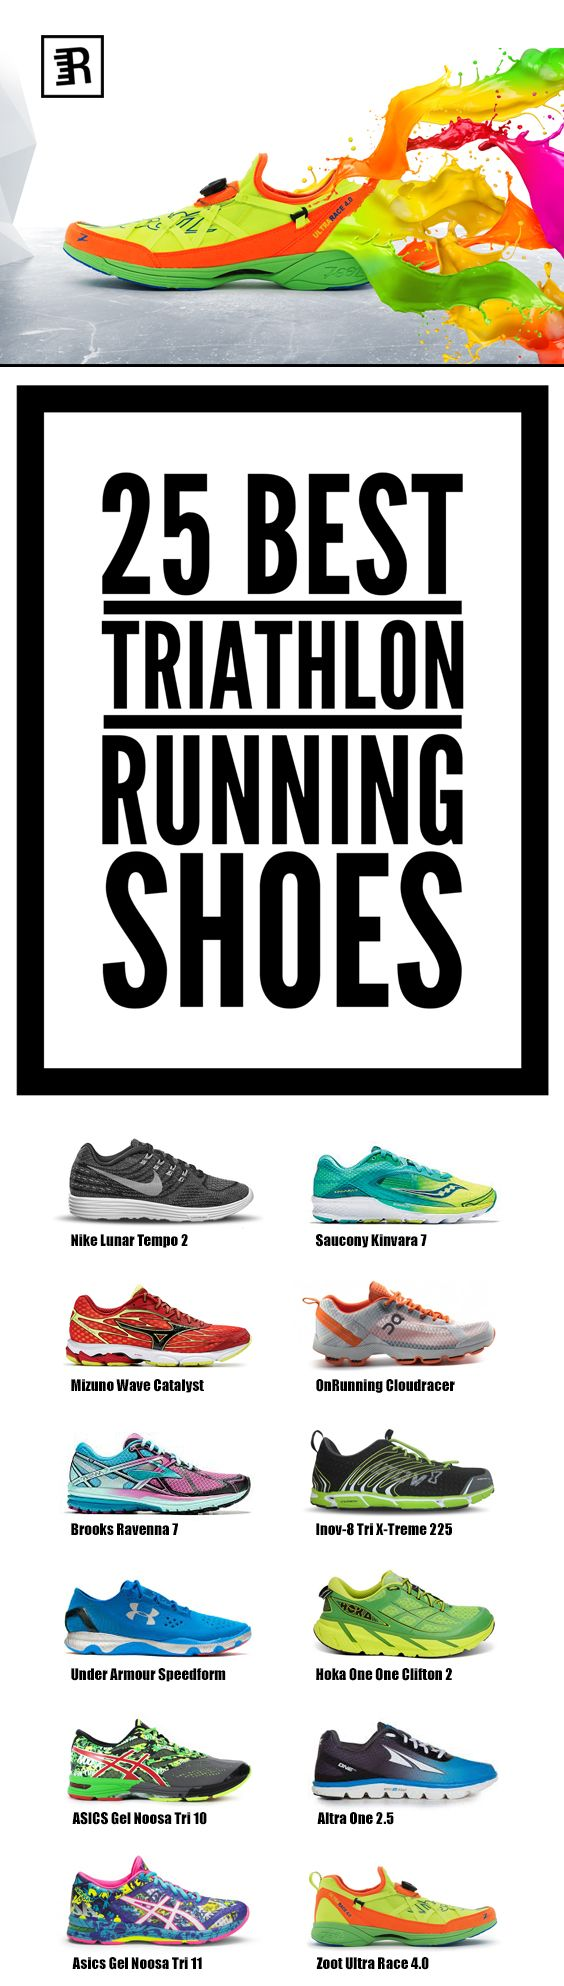 Without a doubt, triathlon specific running shoes are the most important piece of equipment in the last phase of the T3.